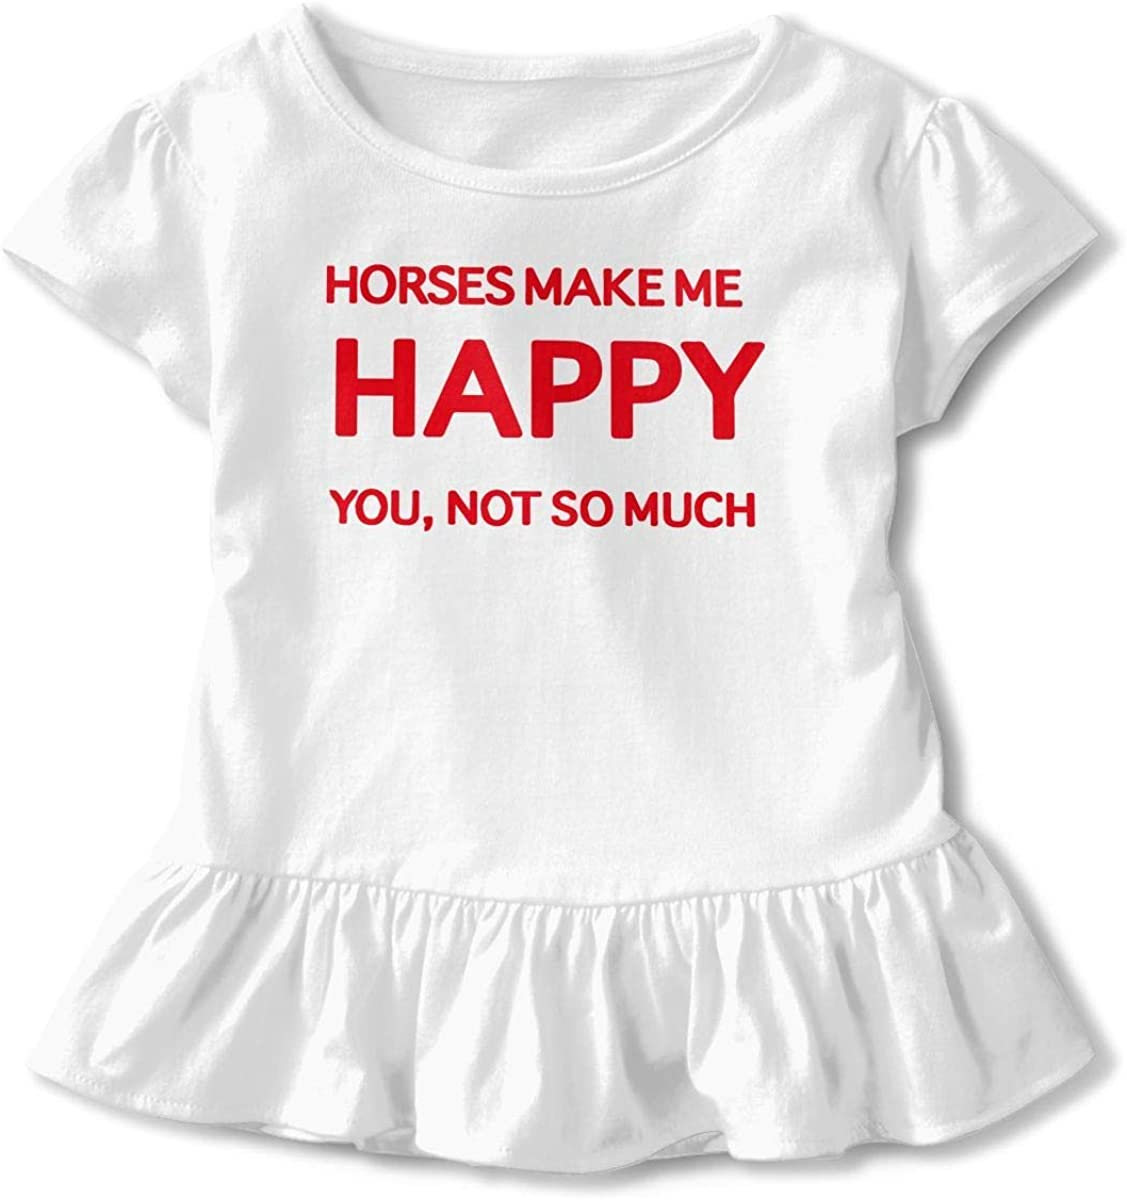 Toddler Baby Girl Horses Makes Me Happy You Not So Much Funny Short Sleeve Cotton T Shirts Basic Tops Tee Clothes